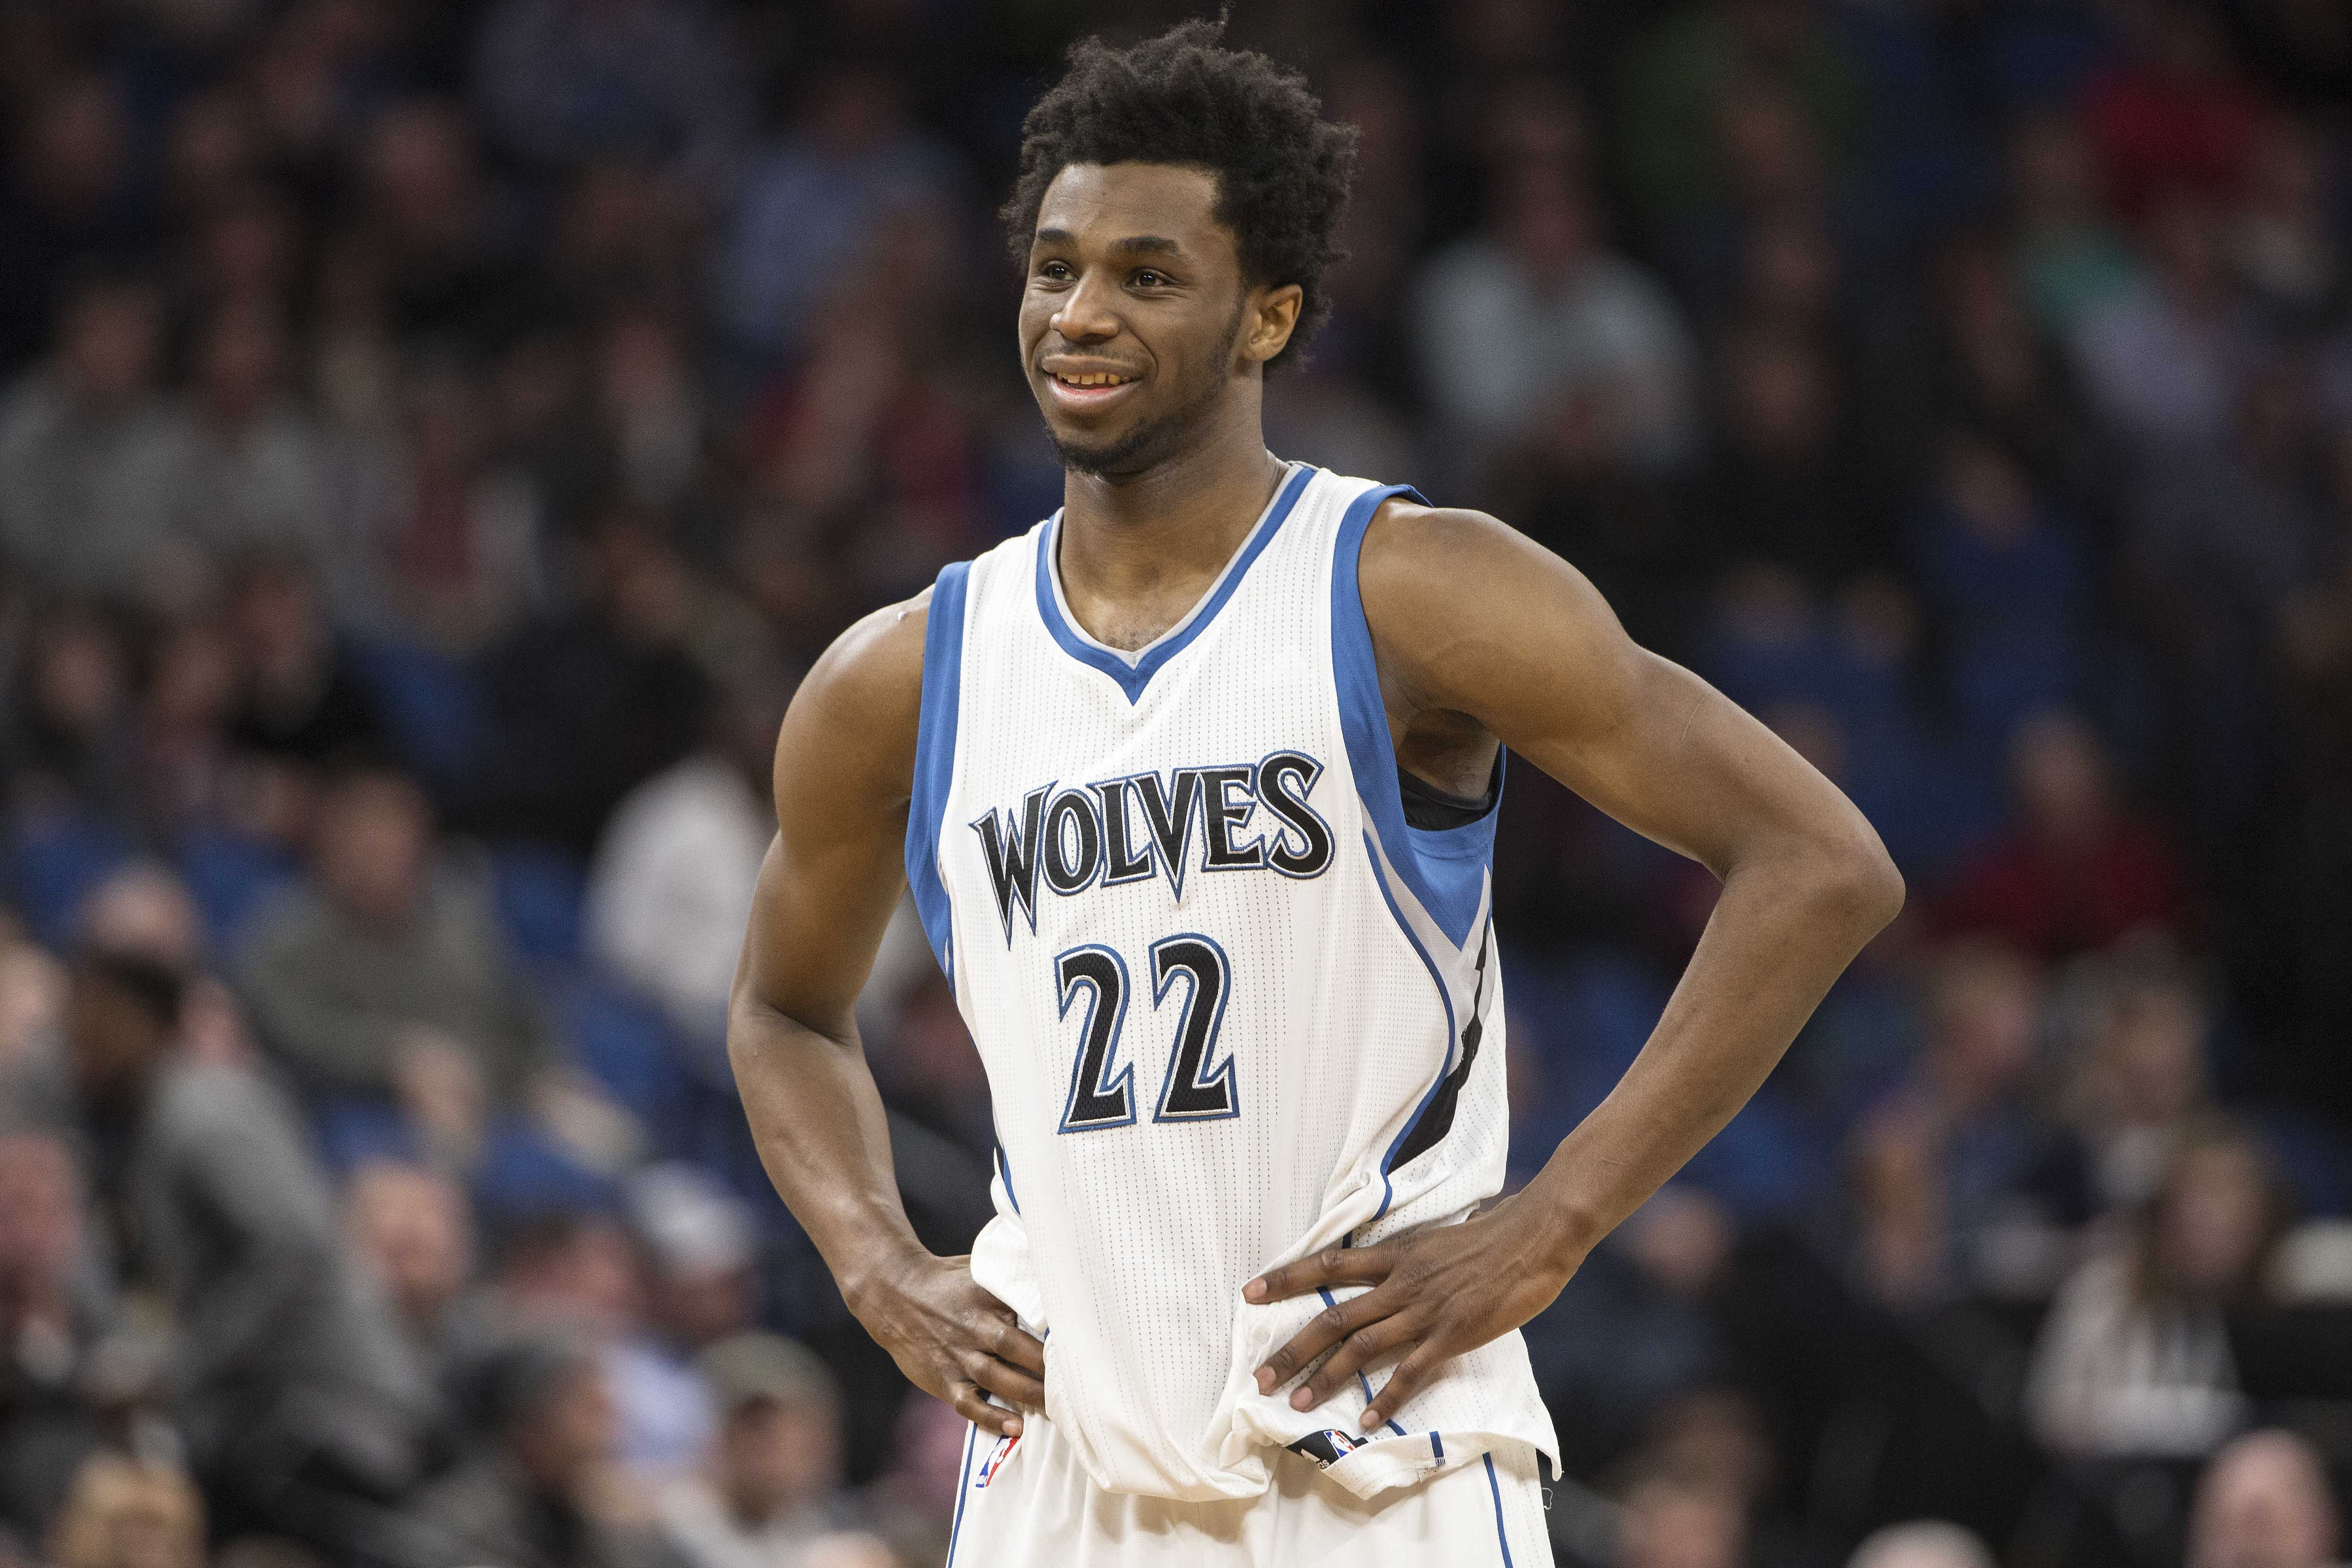 Andrew Wiggins throws down vicious dunk over Nikola Vucevic (Video)